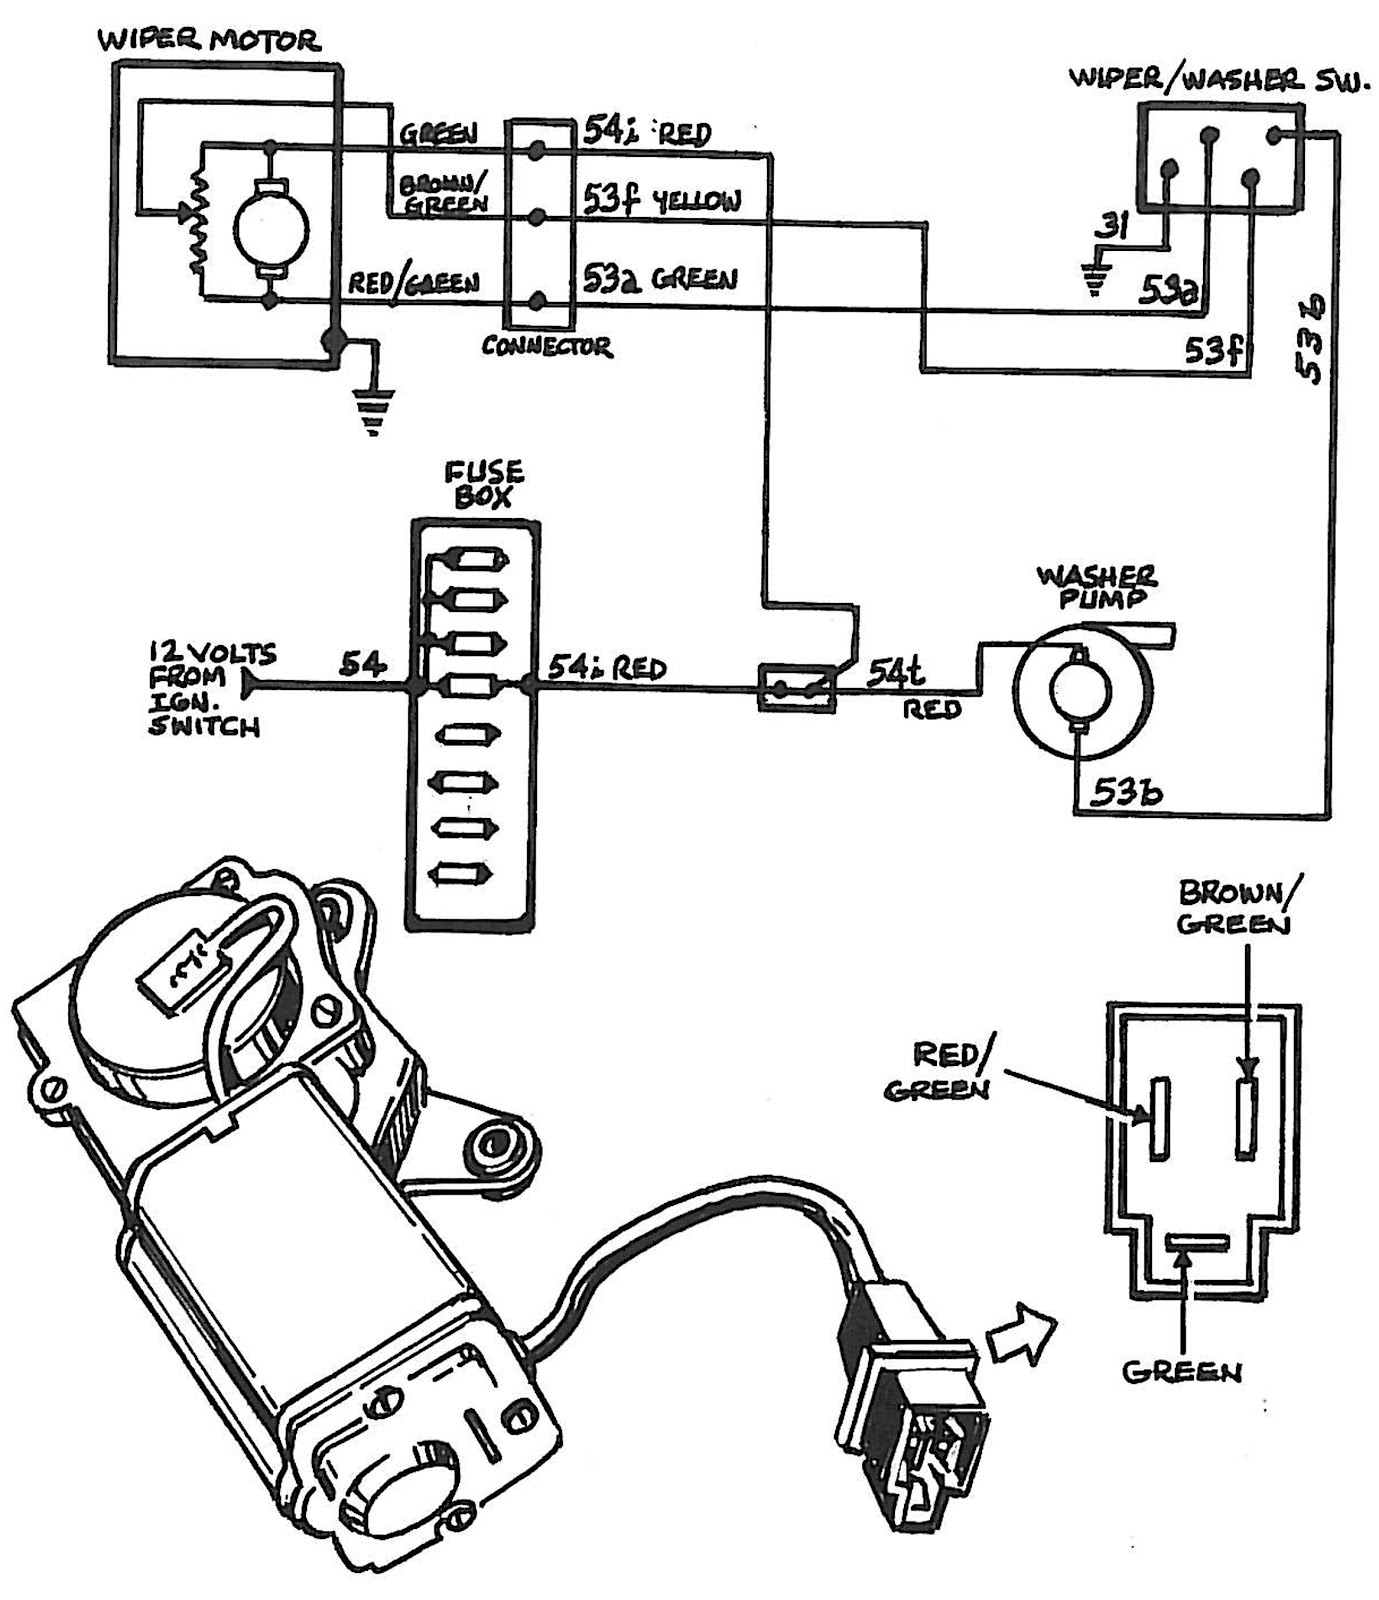 1967 Mustang Wiring Harness Diagram Schematic - Cs-hacks.com